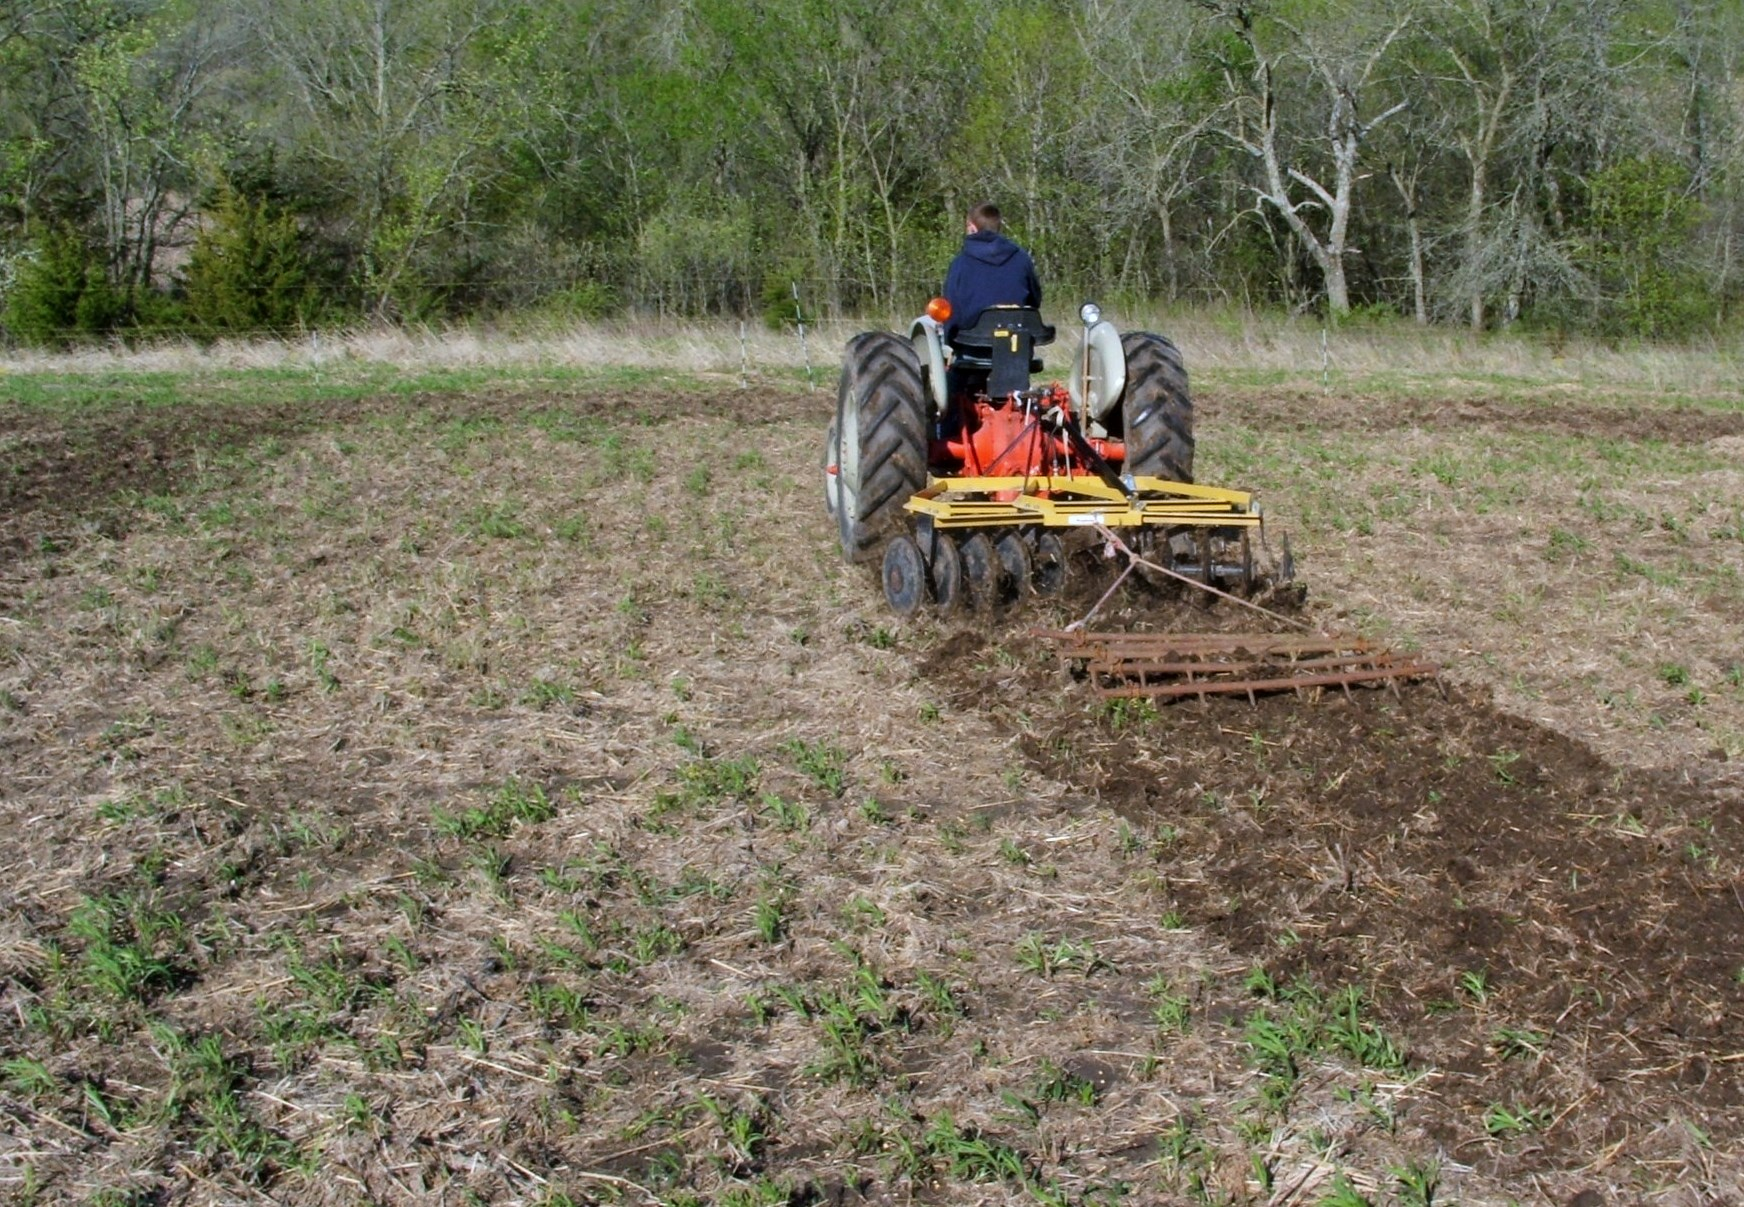 A disc can break ground, cover seed and fertilizer, and level a food plot.  A drag pulled behind helps to cover seed and pack but is not necessary.  In this plot, the seed and fertilizer is already spread because this is an established plot.  One pass with the disc and I'm done planting!